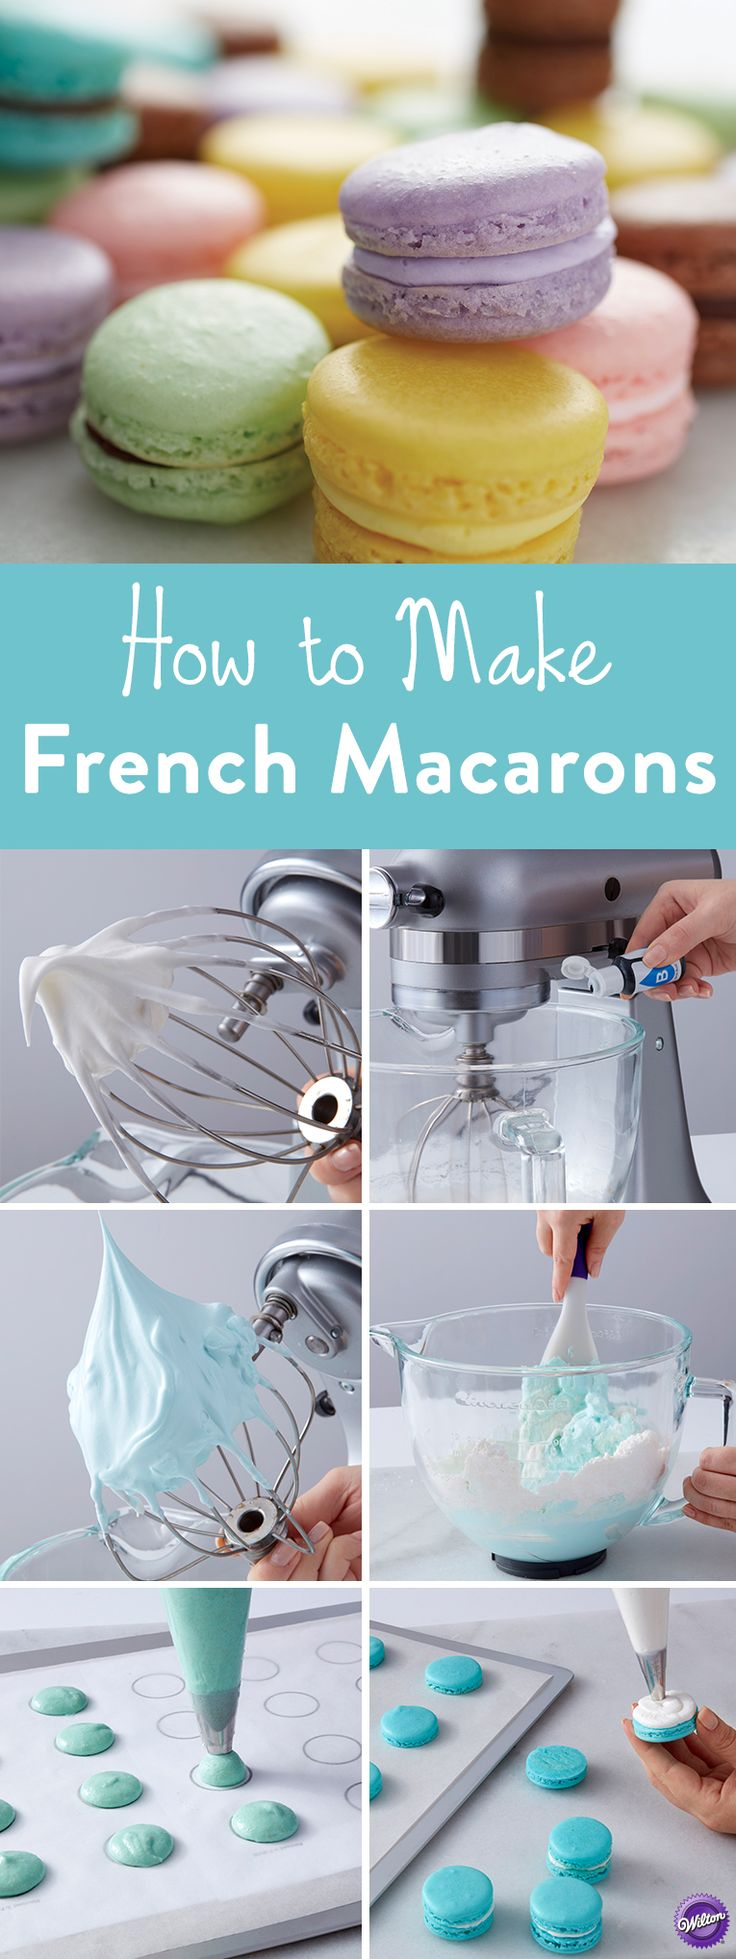 Step By Step Diagram Template: 25+ Best Ideas About Macaroons On Pinterest